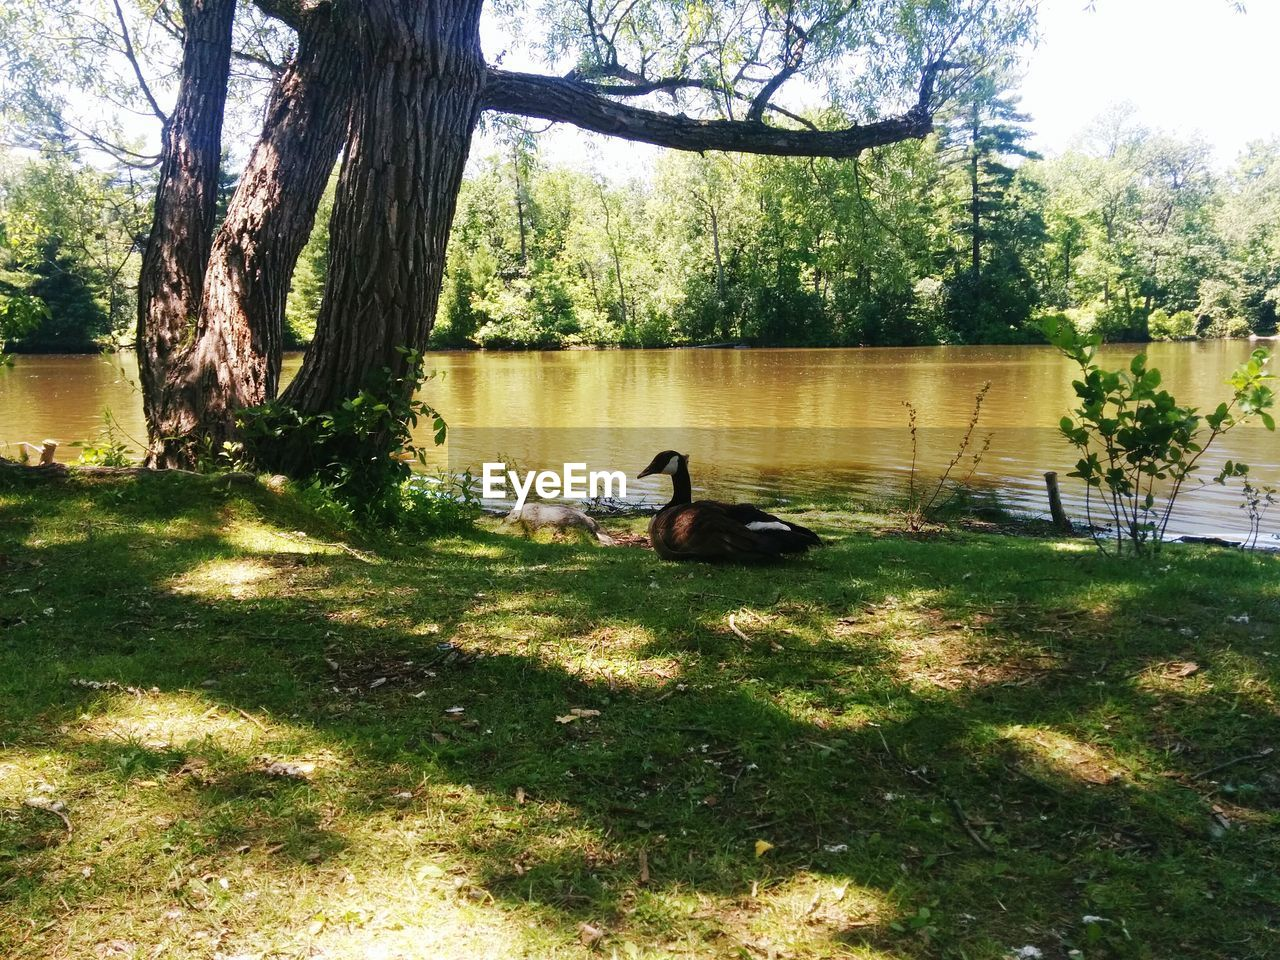 tree, grass, lake, animal themes, water, nature, bird, day, animals in the wild, growth, outdoors, lakeshore, goose, park - man made space, sunlight, beauty in nature, tree trunk, togetherness, no people, swimming, swan